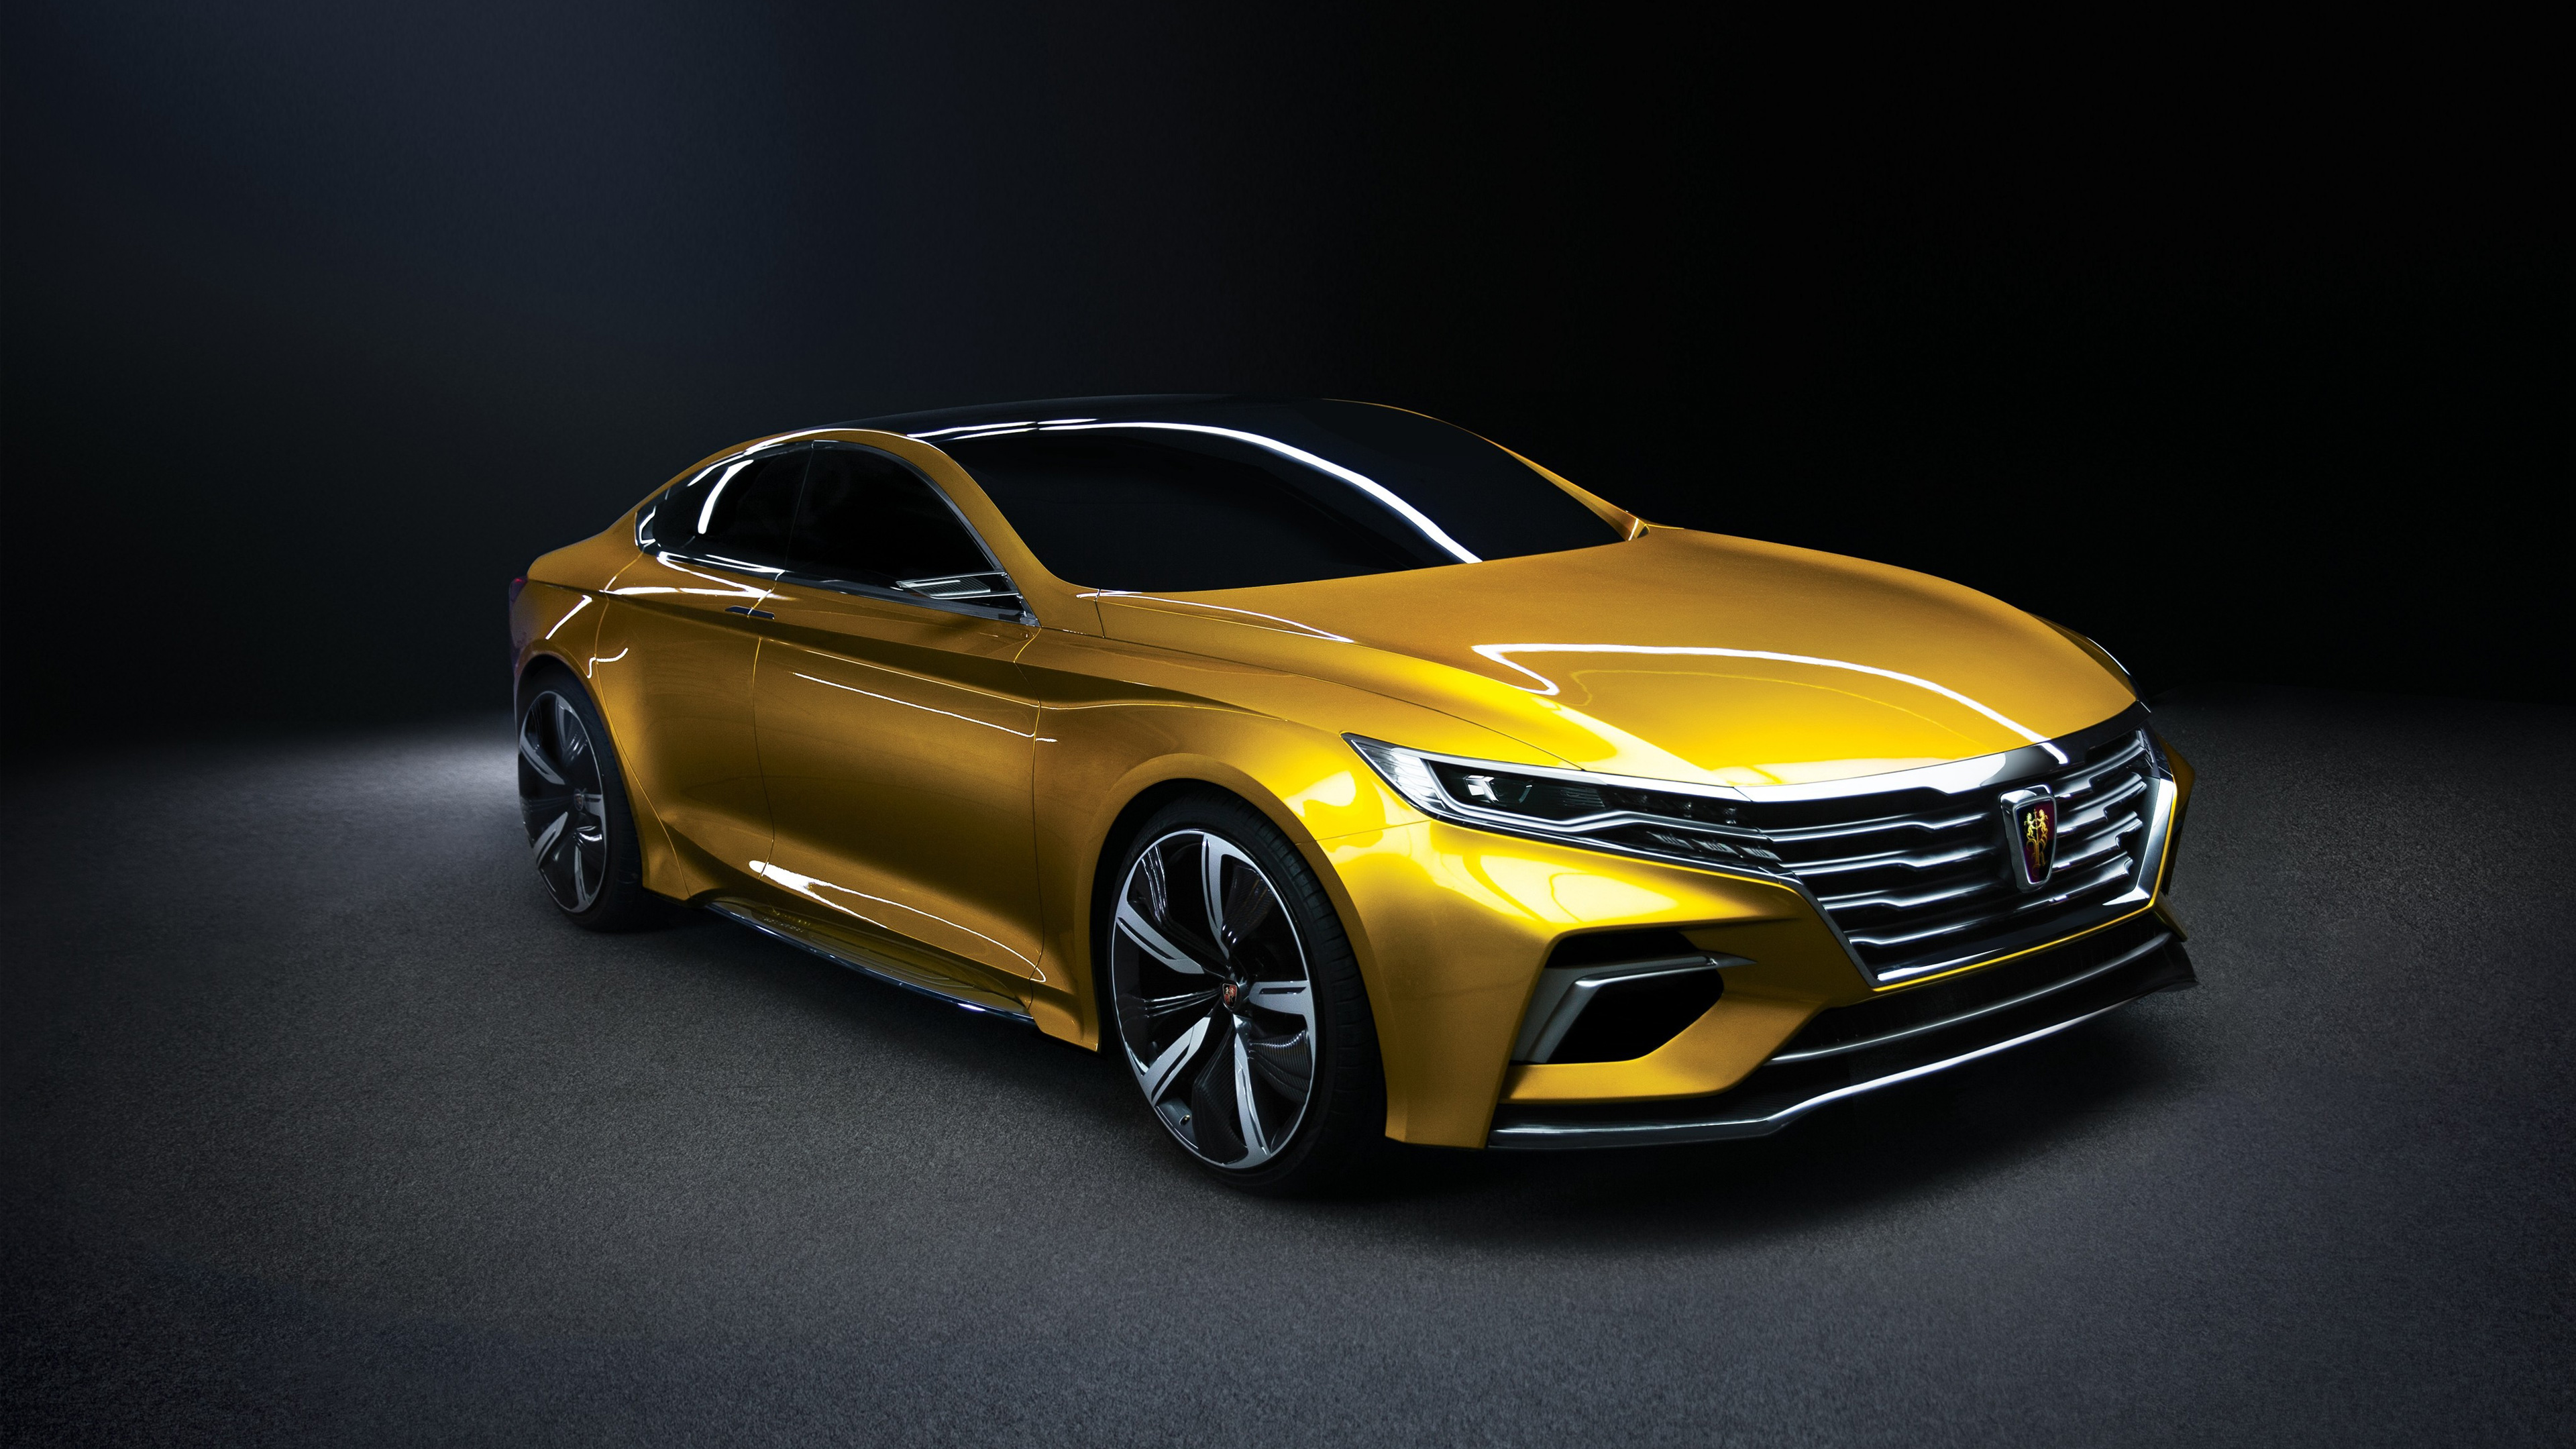 2016 roewe vision r concept wallpaper hd car wallpapers - Future cars hd wallpapers ...